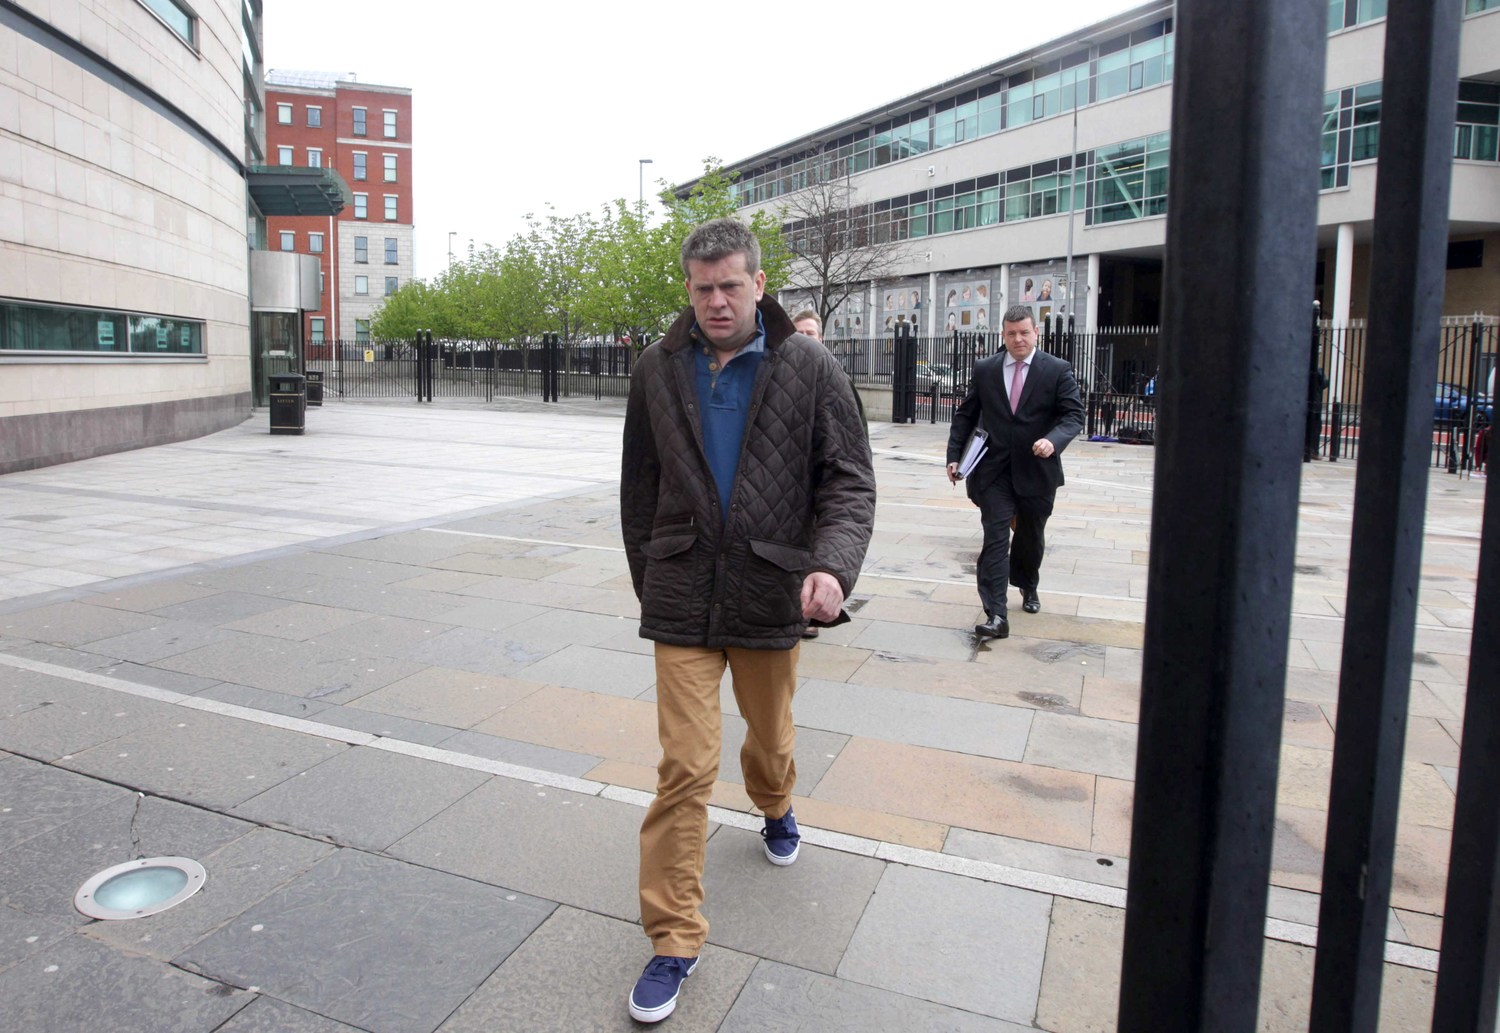 Brian Shivers leaving court today (Friday) after his acquittal for murder